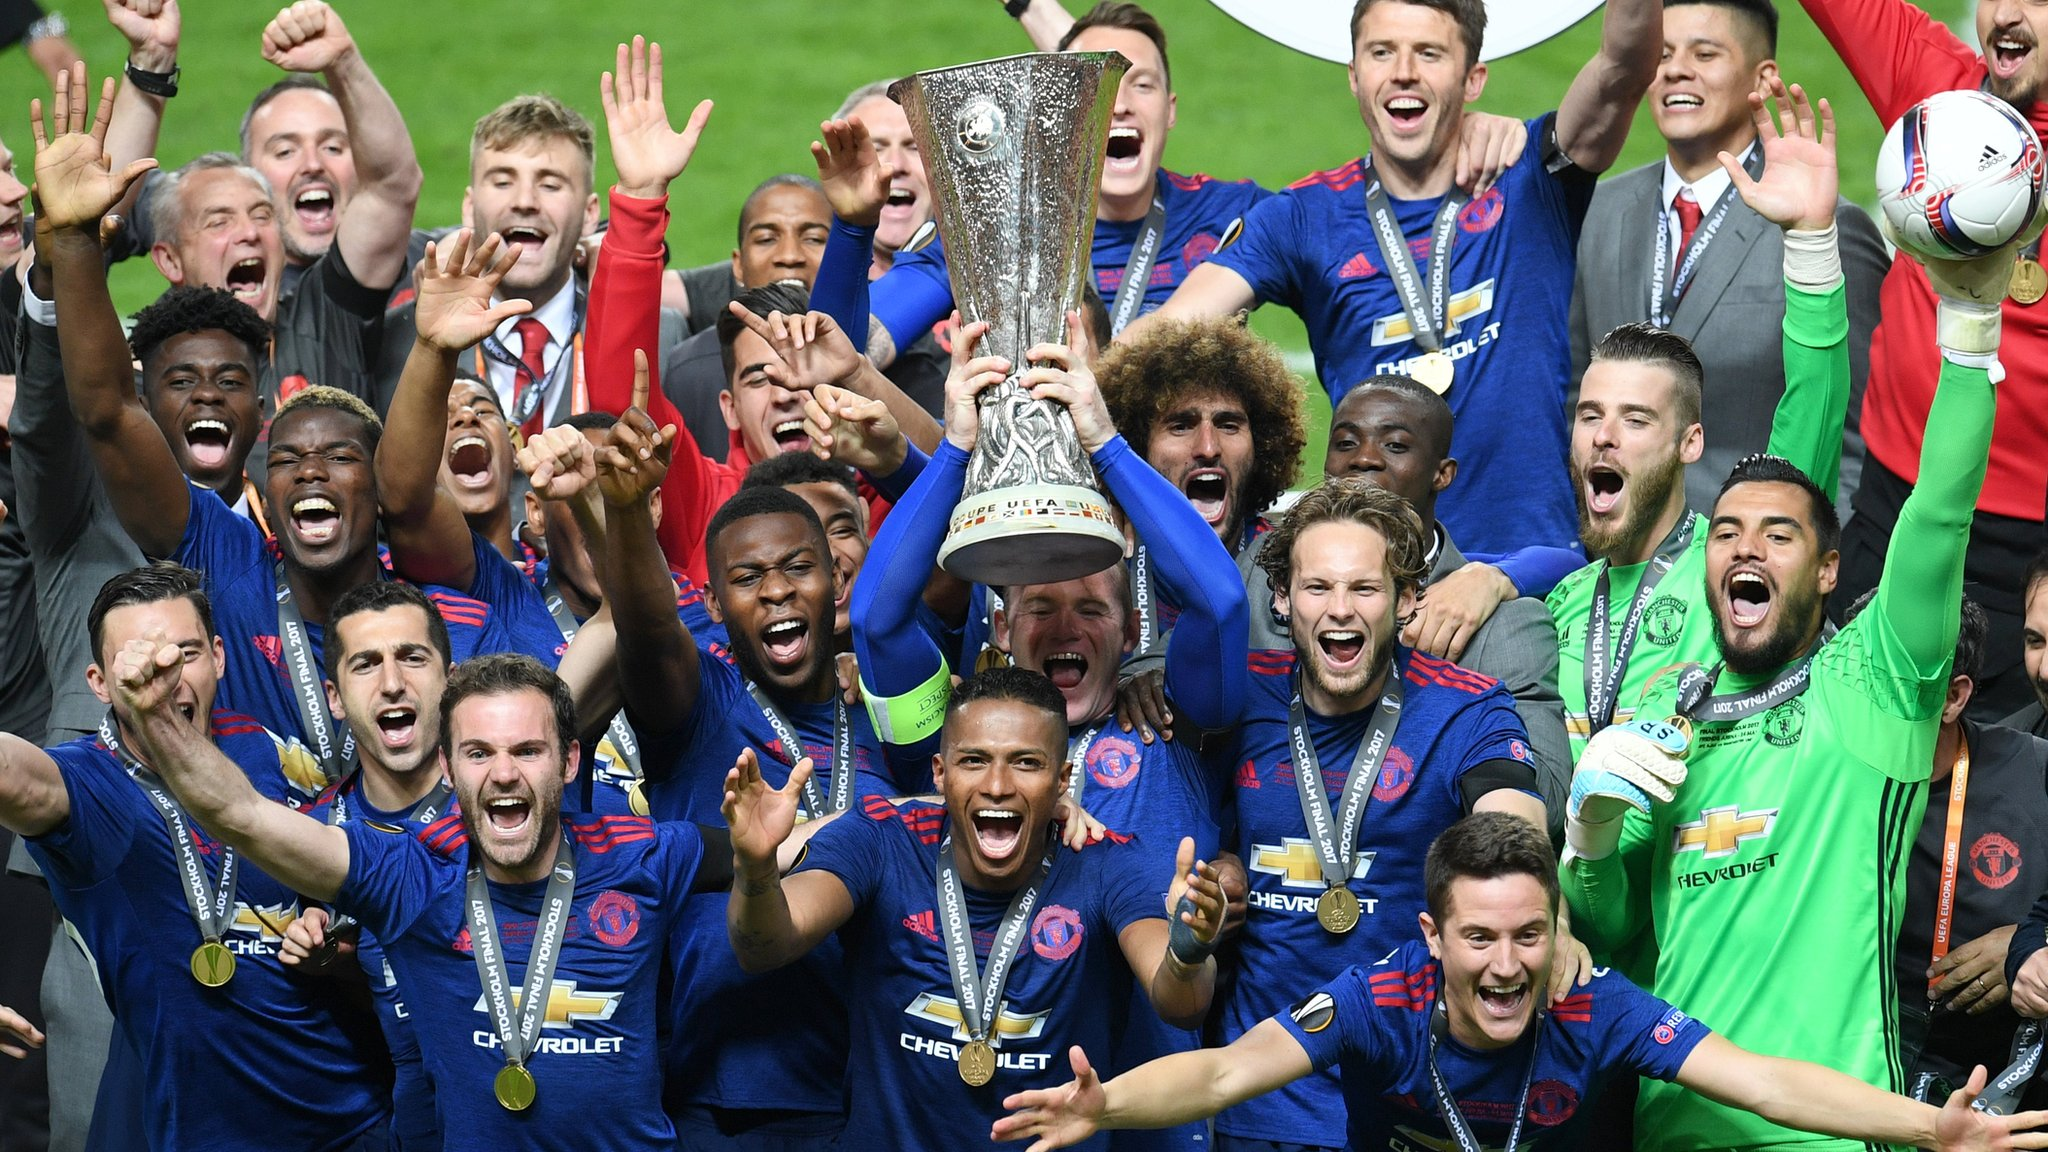 Man Utd beat Ajax to win Europa League on emotional night